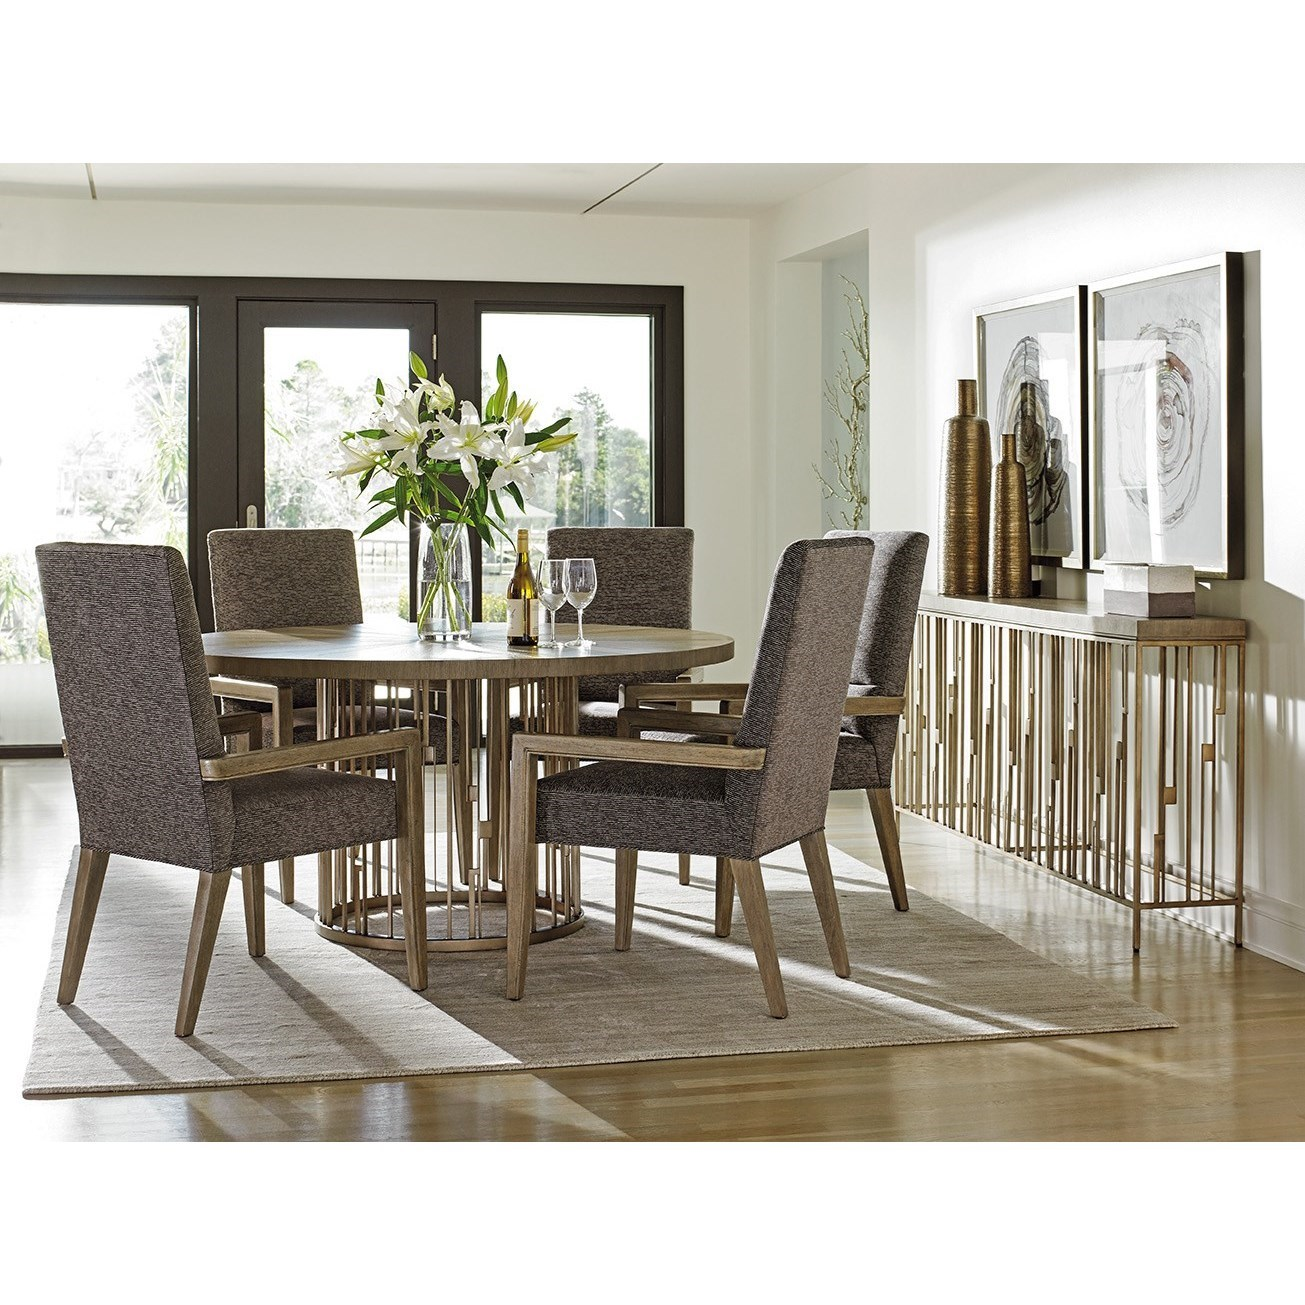 Shadow Play Dining Room Group by Lexington at Jacksonville Furniture Mart